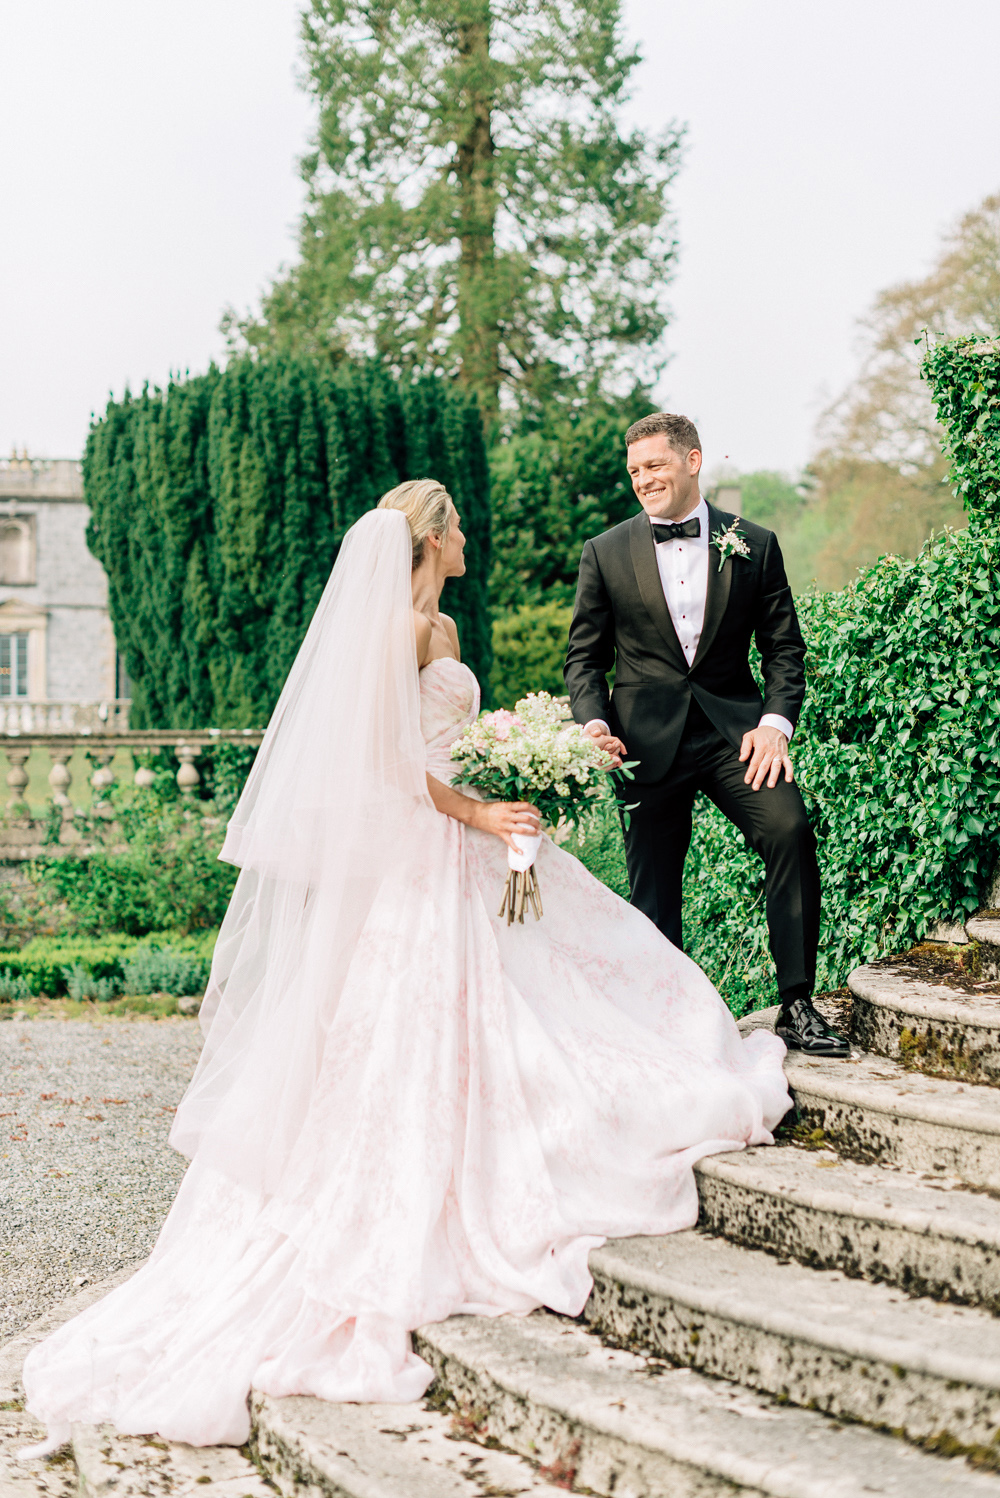 A Musical, Cherry Blossom-Filled Wedding in the Heart of the Irish Countryside